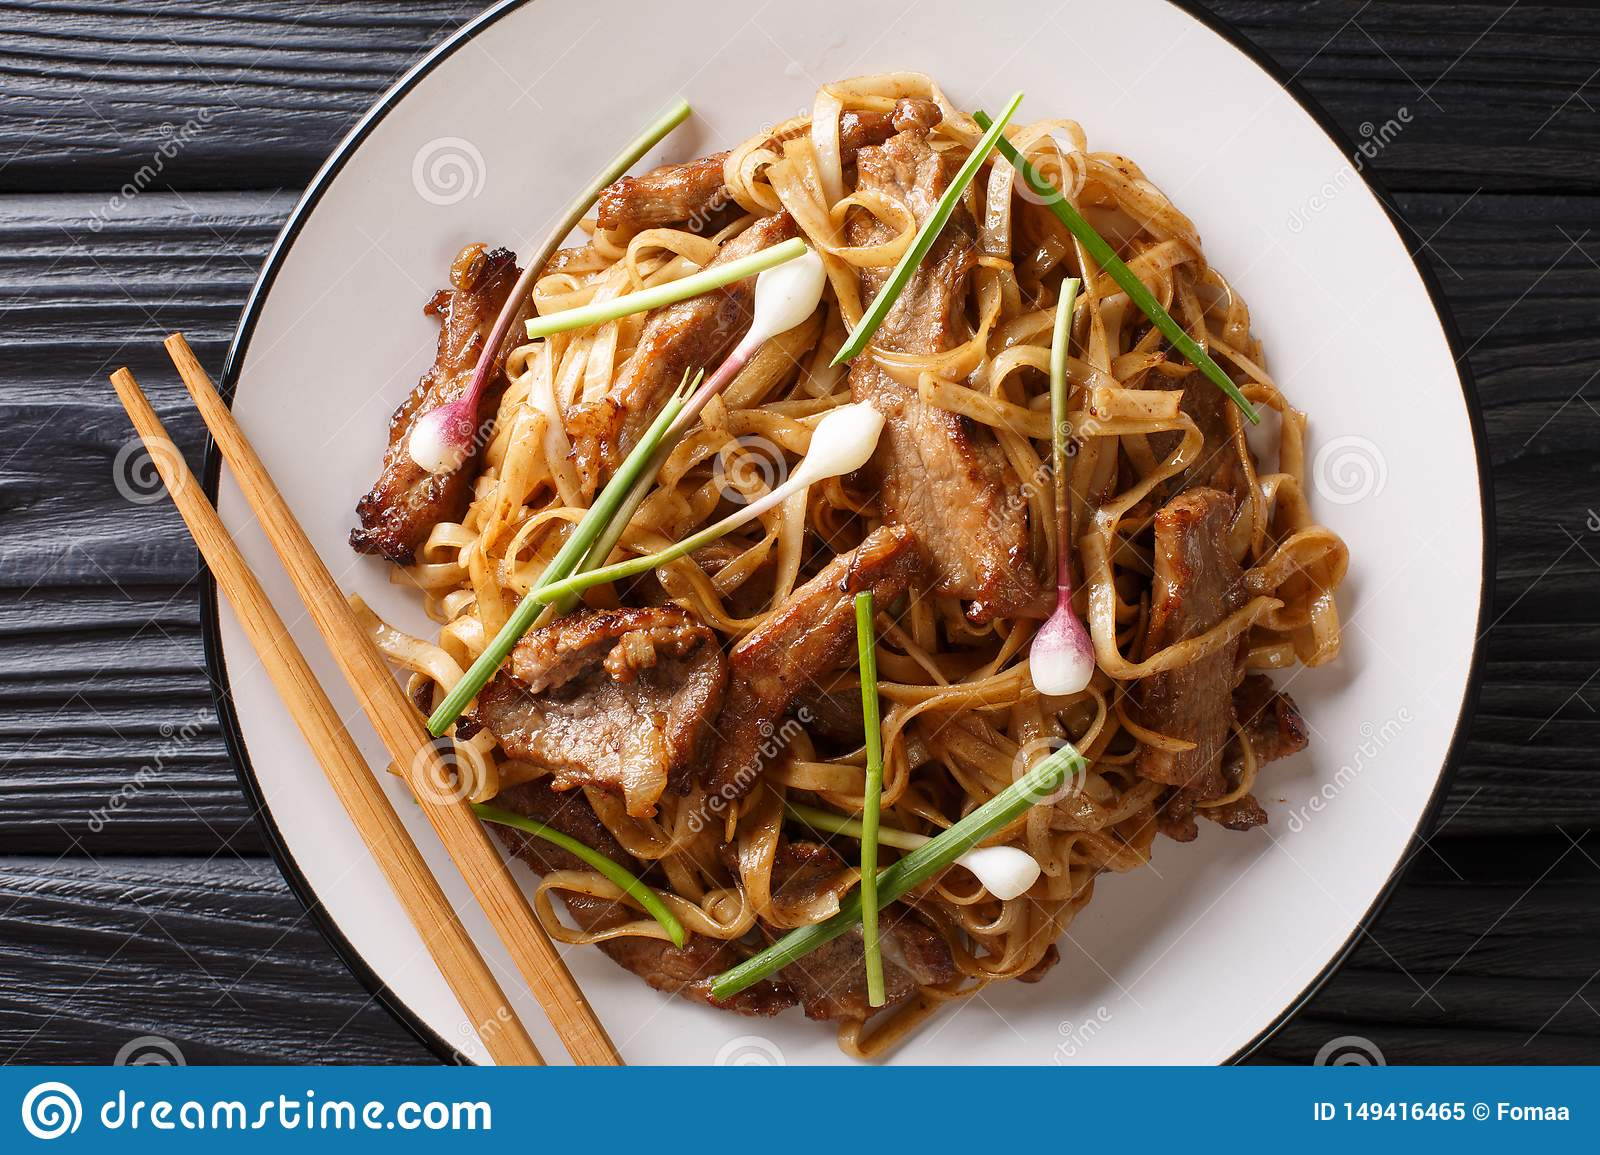 Beef Chow Fun Beef Stir Fried With Rice Noodle Bean Sprouts Spring Onions And Chinese Chives Is A Famous Cantonese Dish Stock Image Image Of Restaurant Fresh 149416465